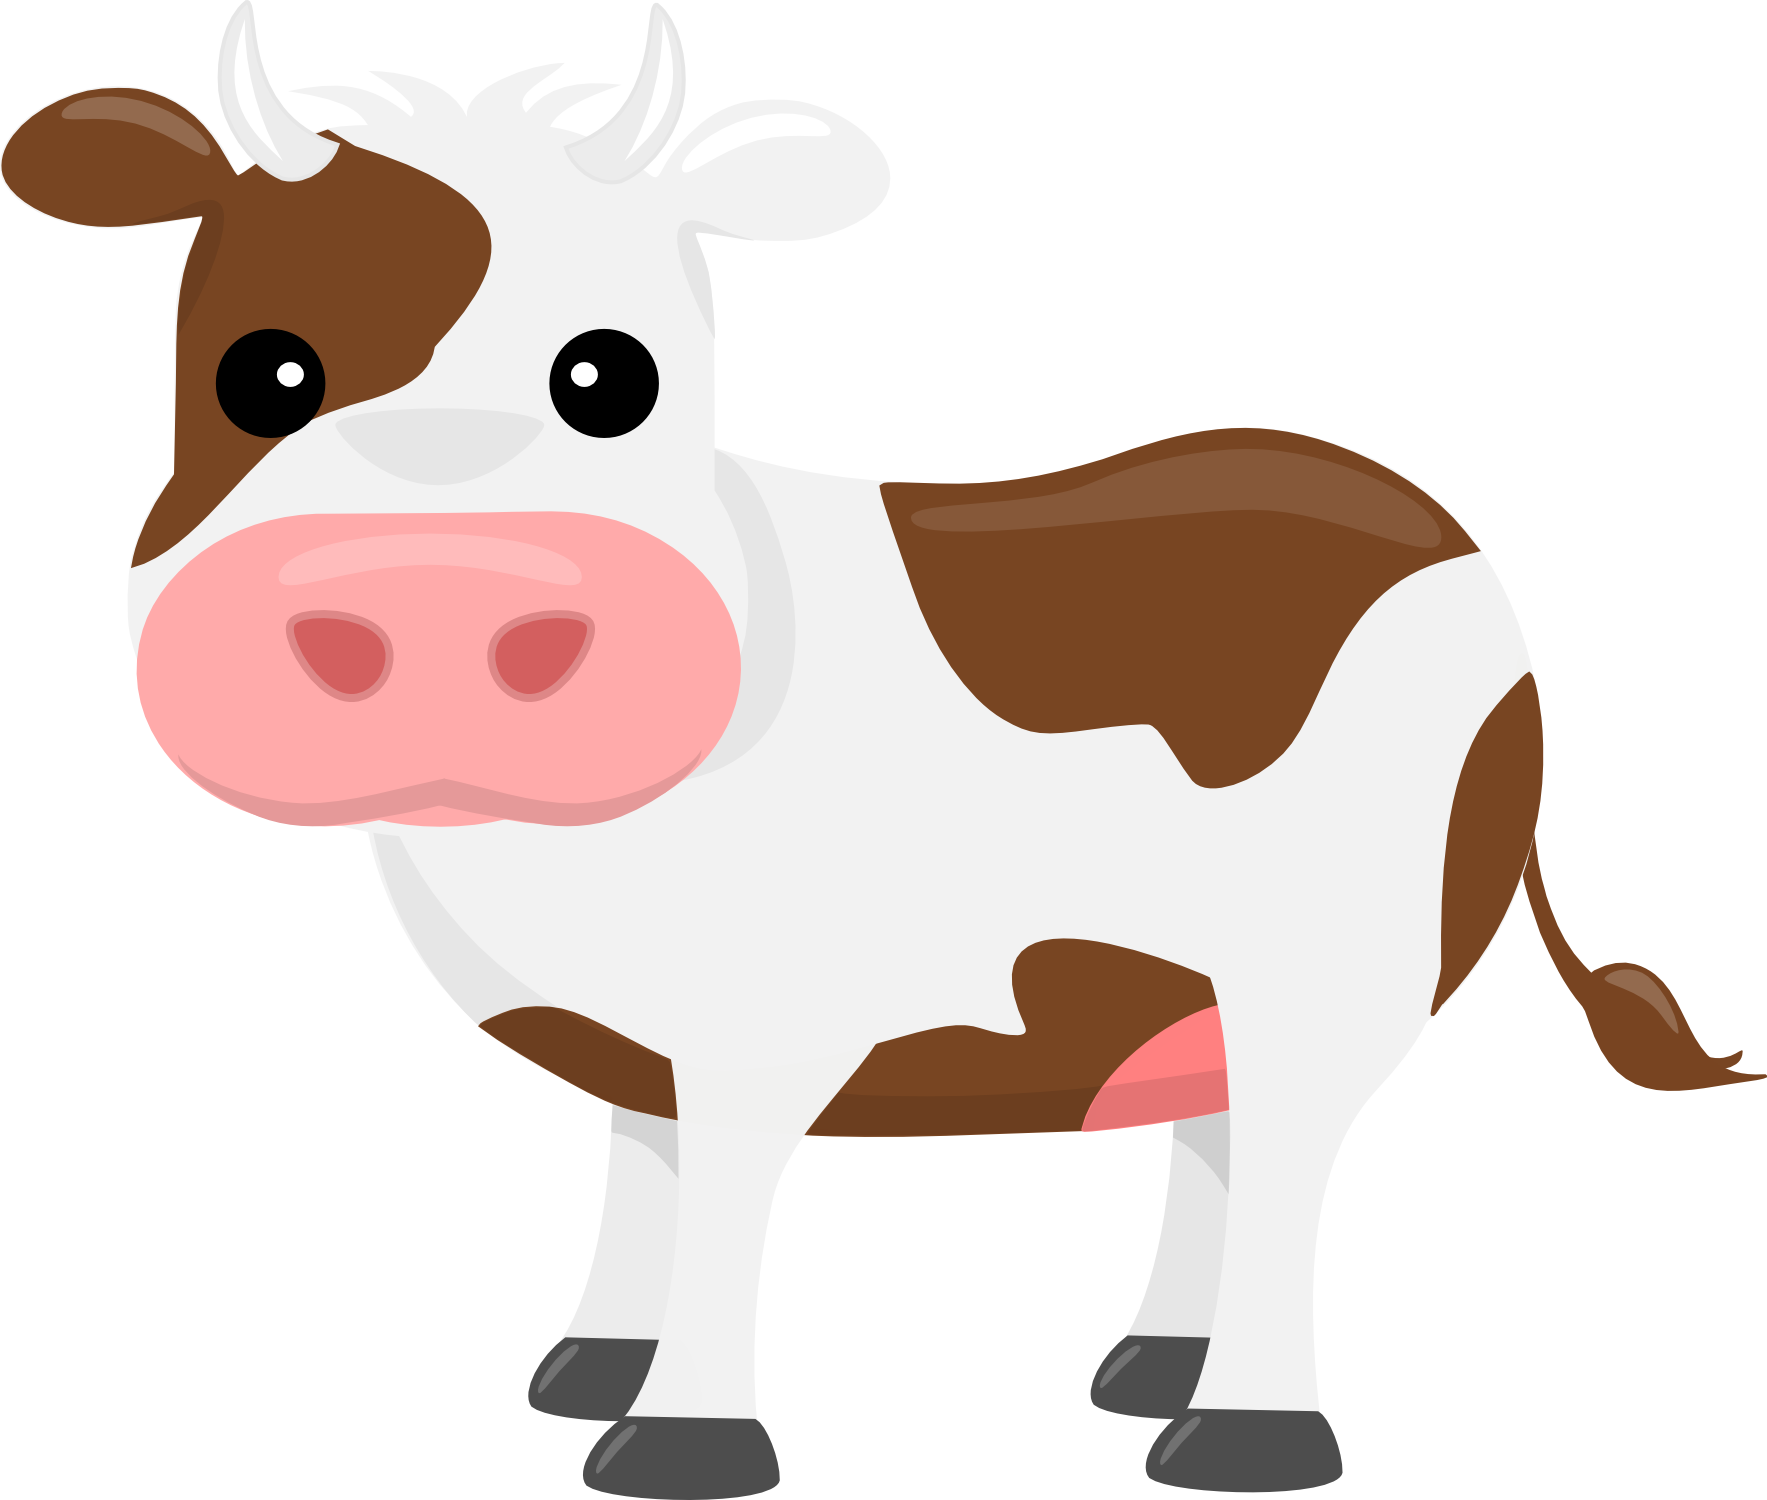 Flour clipart self raising flour. Cow printable pencil and